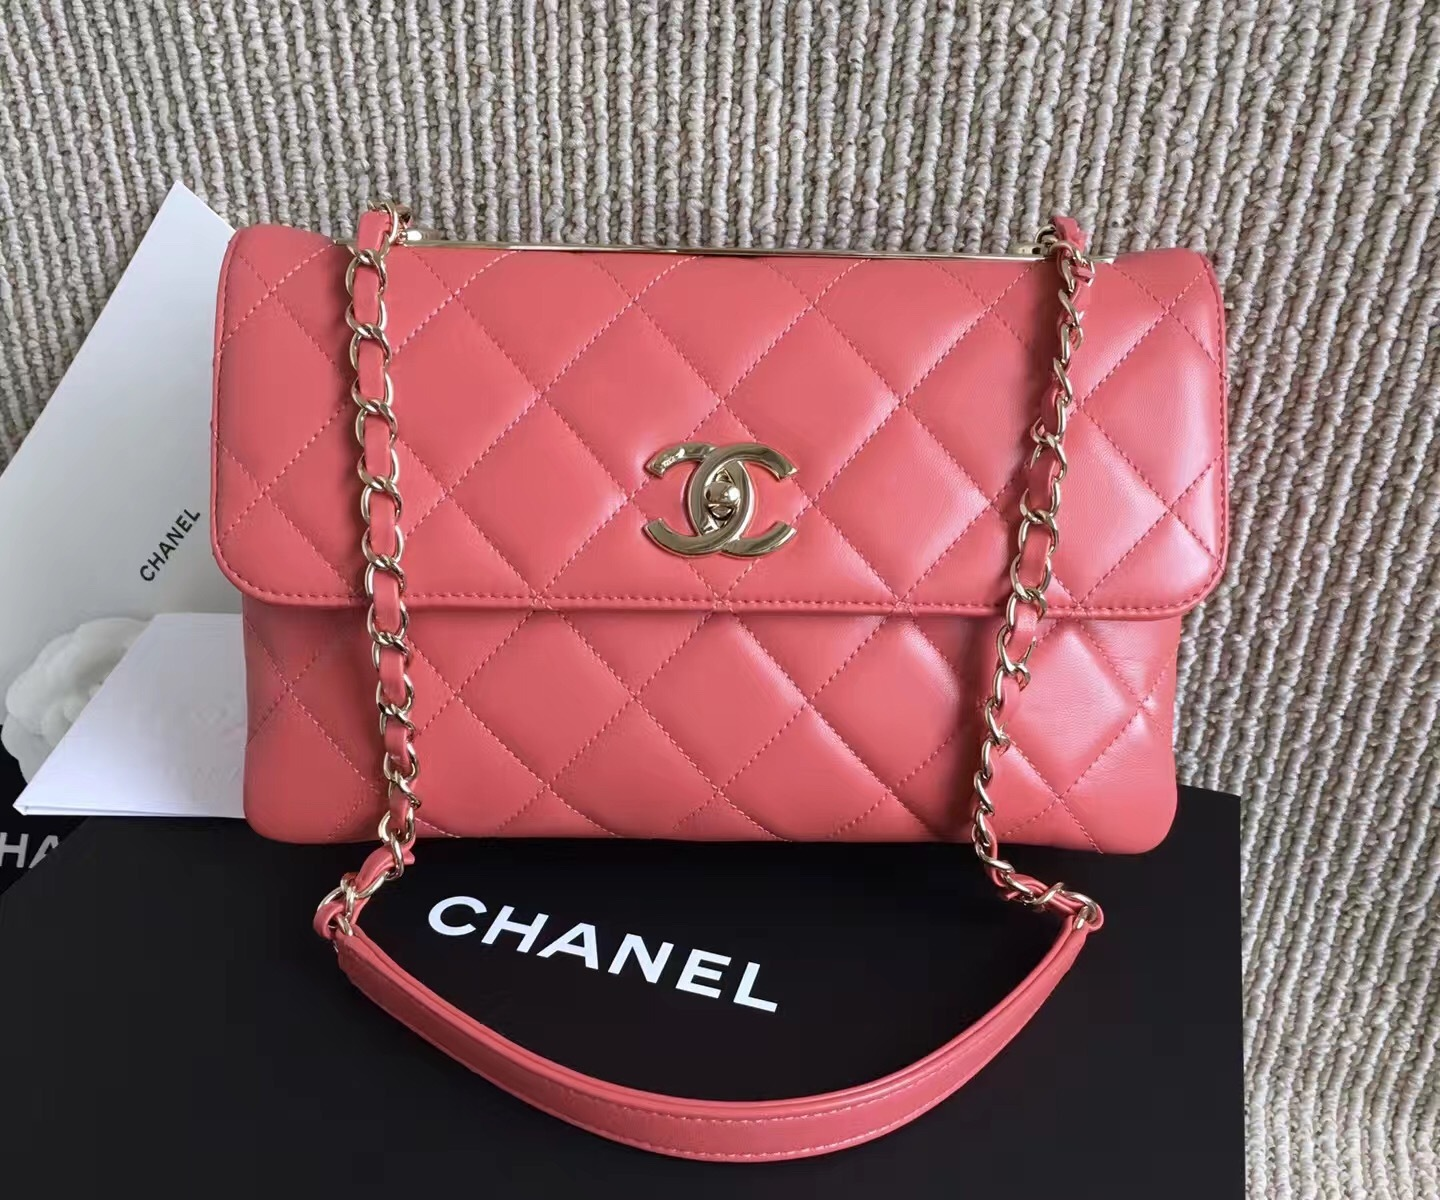 AUTHENTIC CHANEL 2017 PINK QUILTED LAMBSKIN TRENDY CC FLAP BAG GHW RECEIPT